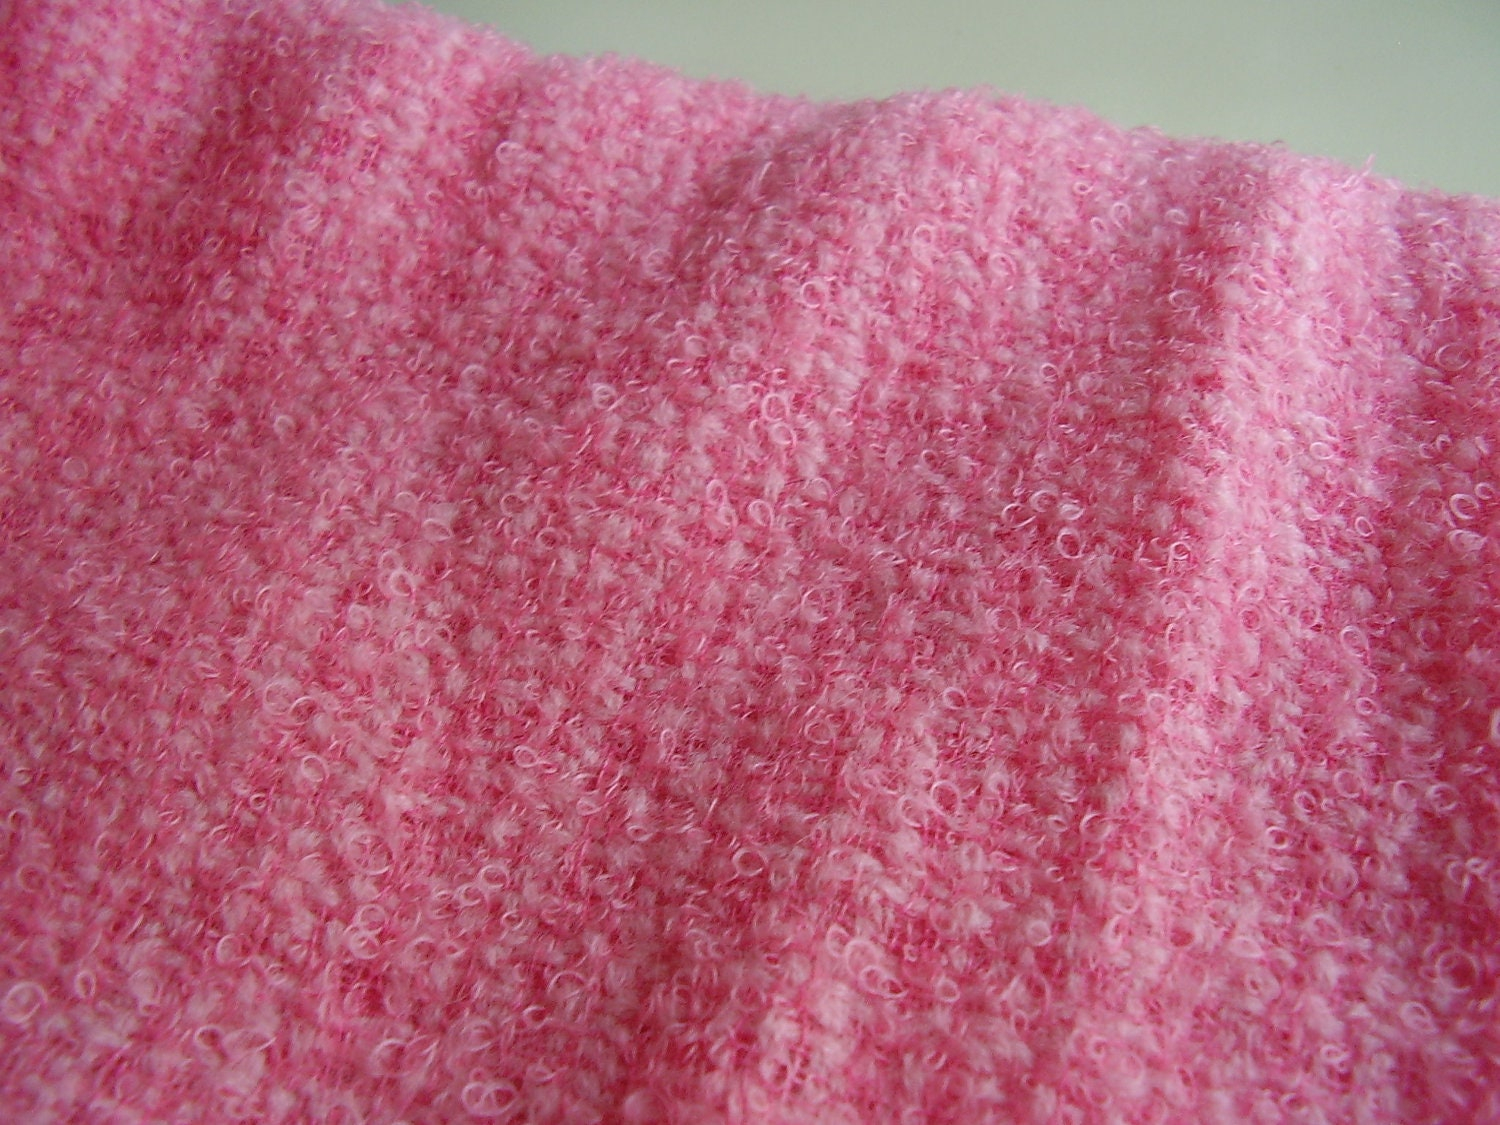 Vintage 1960s 1970s Cotton Candy Pink Boucle Sewing Supply